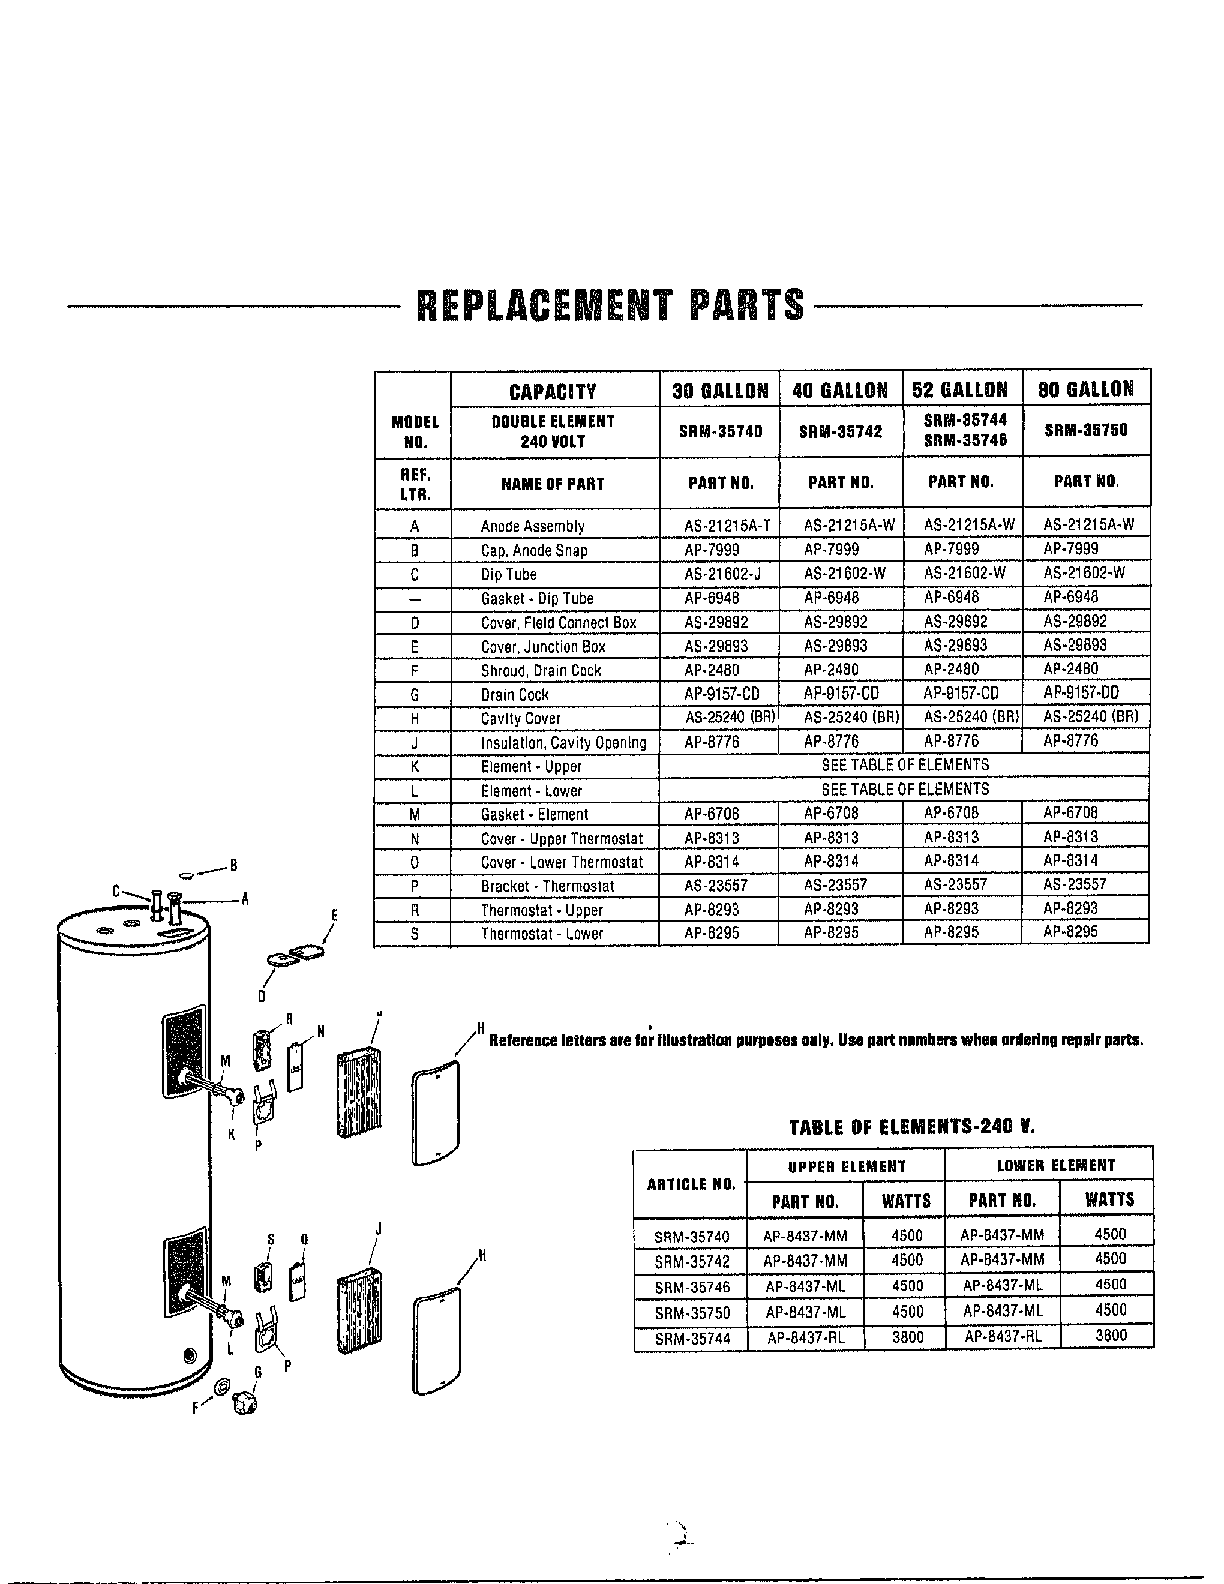 Water Heater  Replacement Parts Diagram  U0026 Parts List For